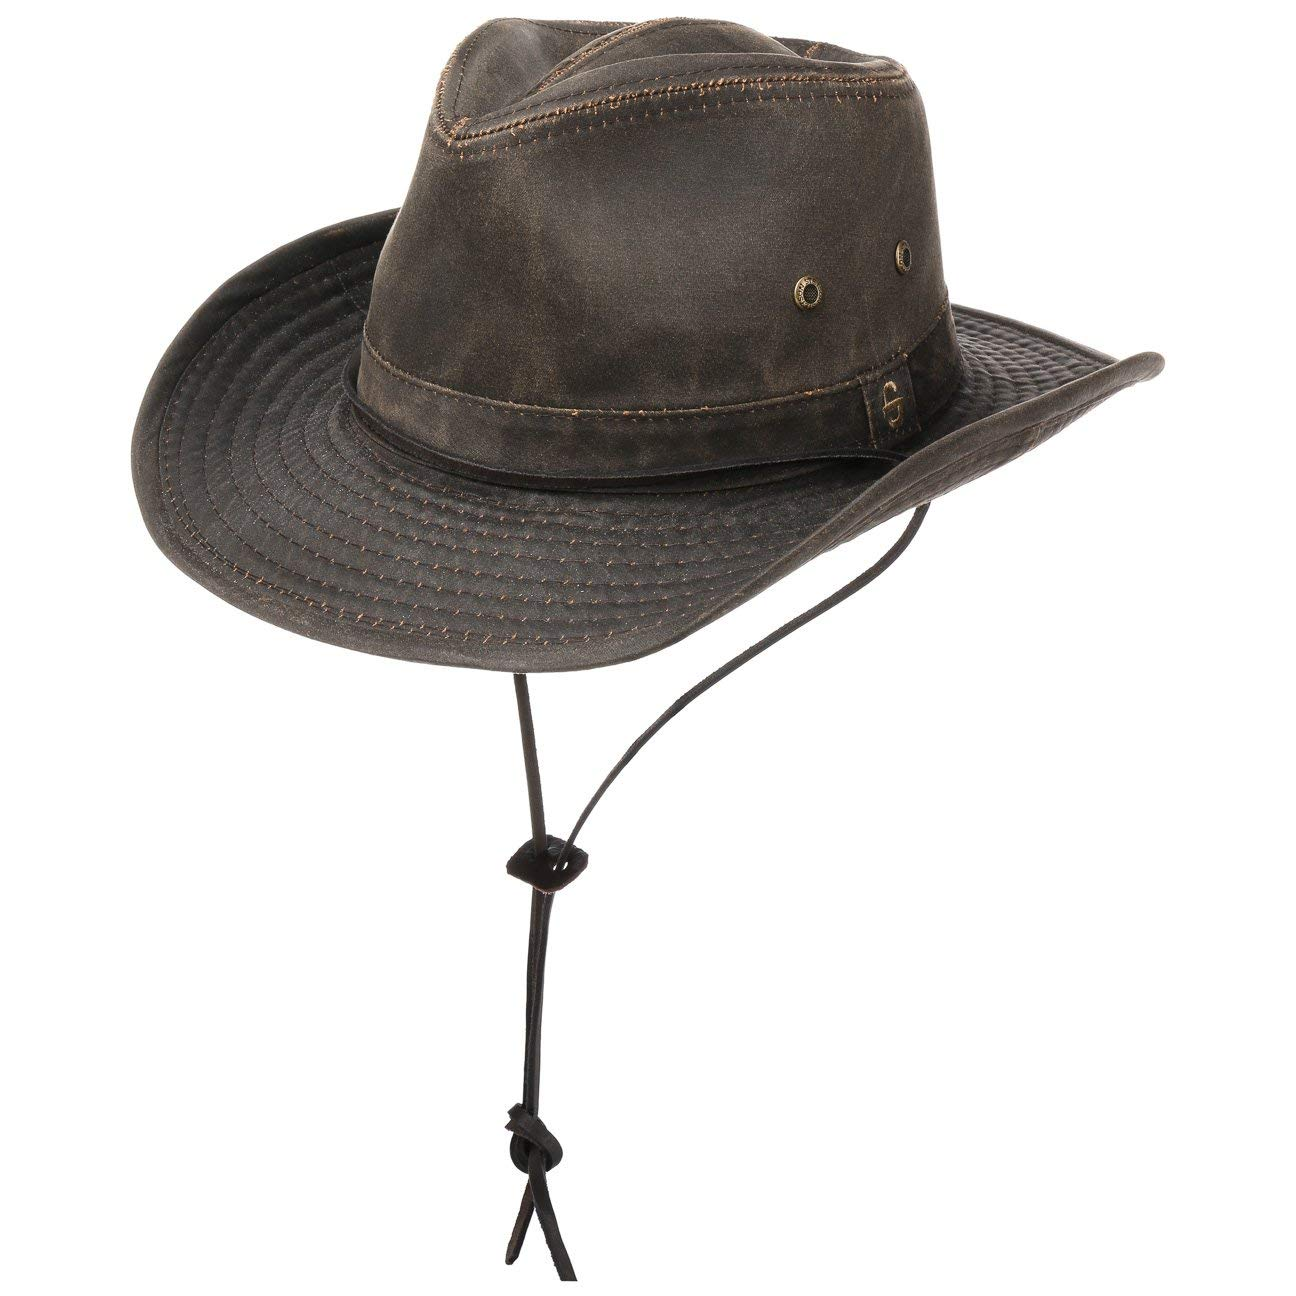 Stetson Diaz Outdoor Hat Men | Cowboy Cloth Vintage Design with Chin Strap, Piping, Fringes Summer-Winter